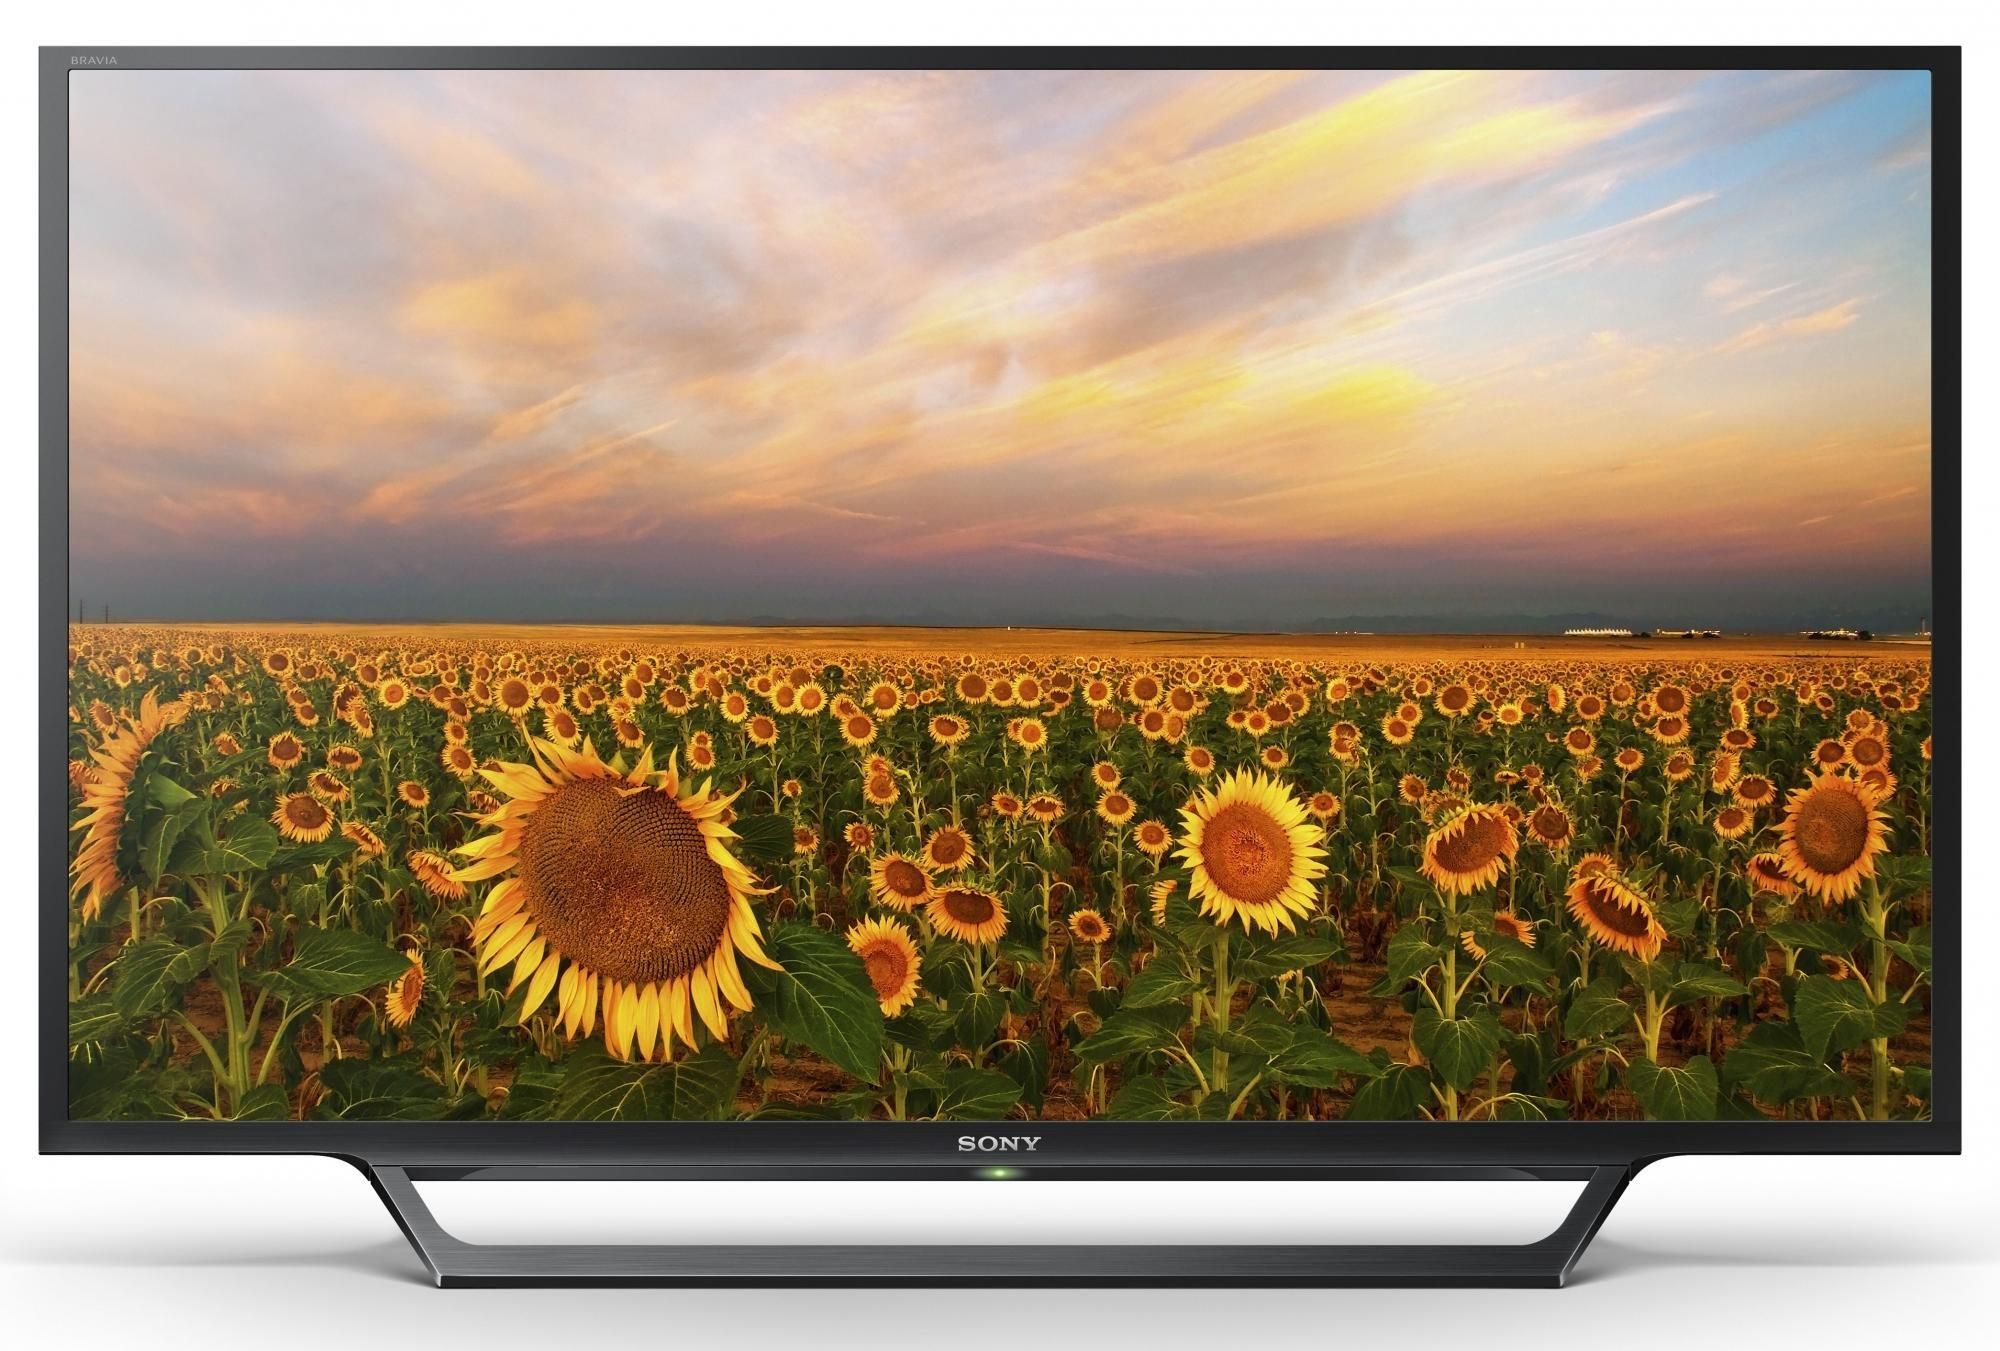 Televisor Sony KDL-40RD450B Slim Full HD 200hz